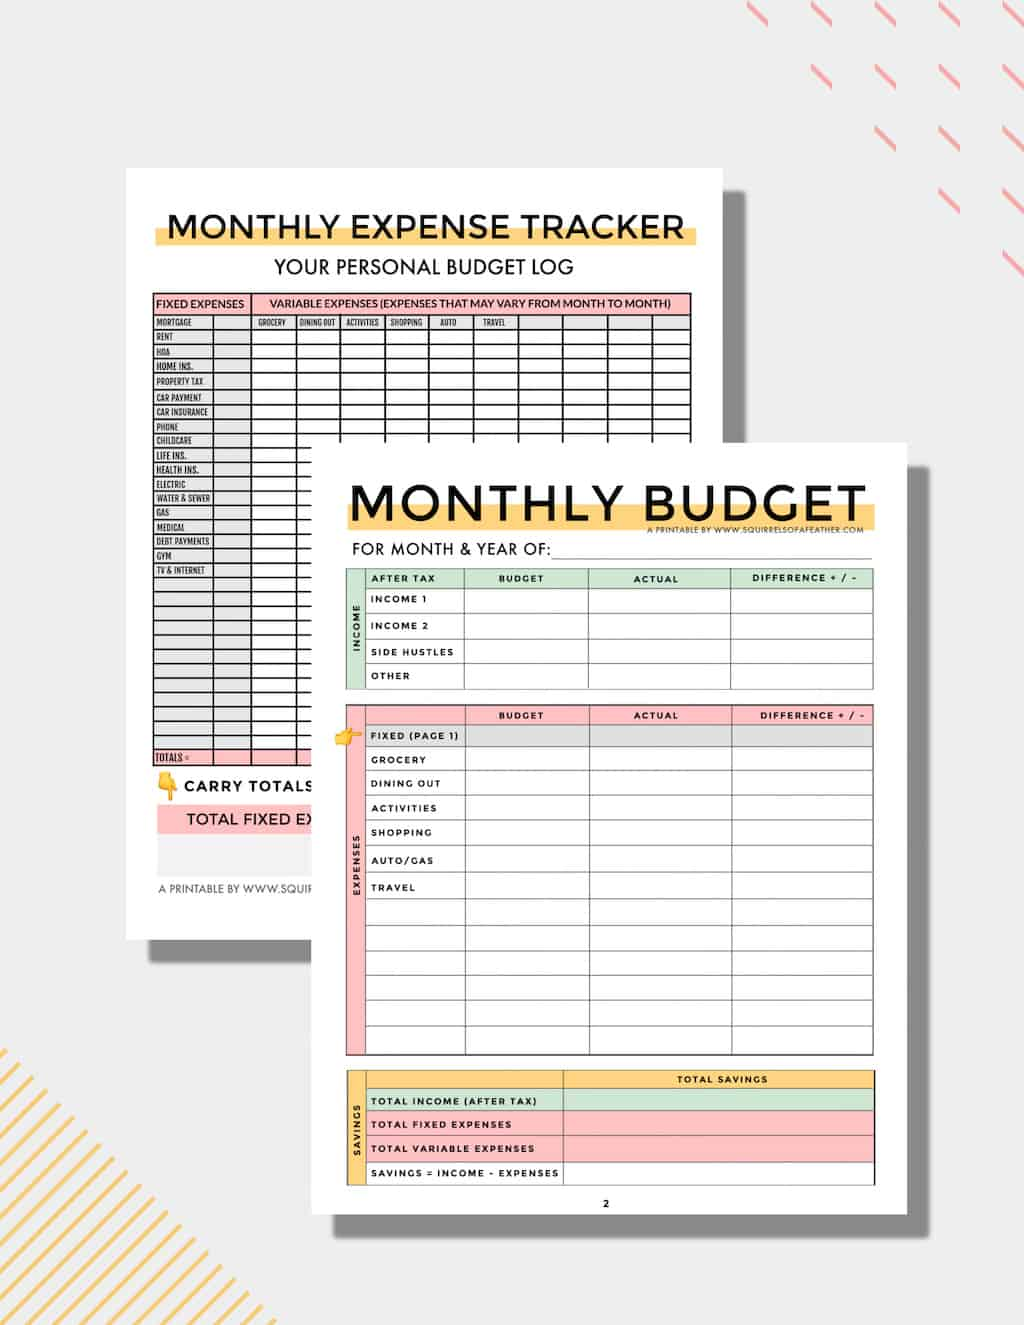 Complete FREE Budget Planner PDF